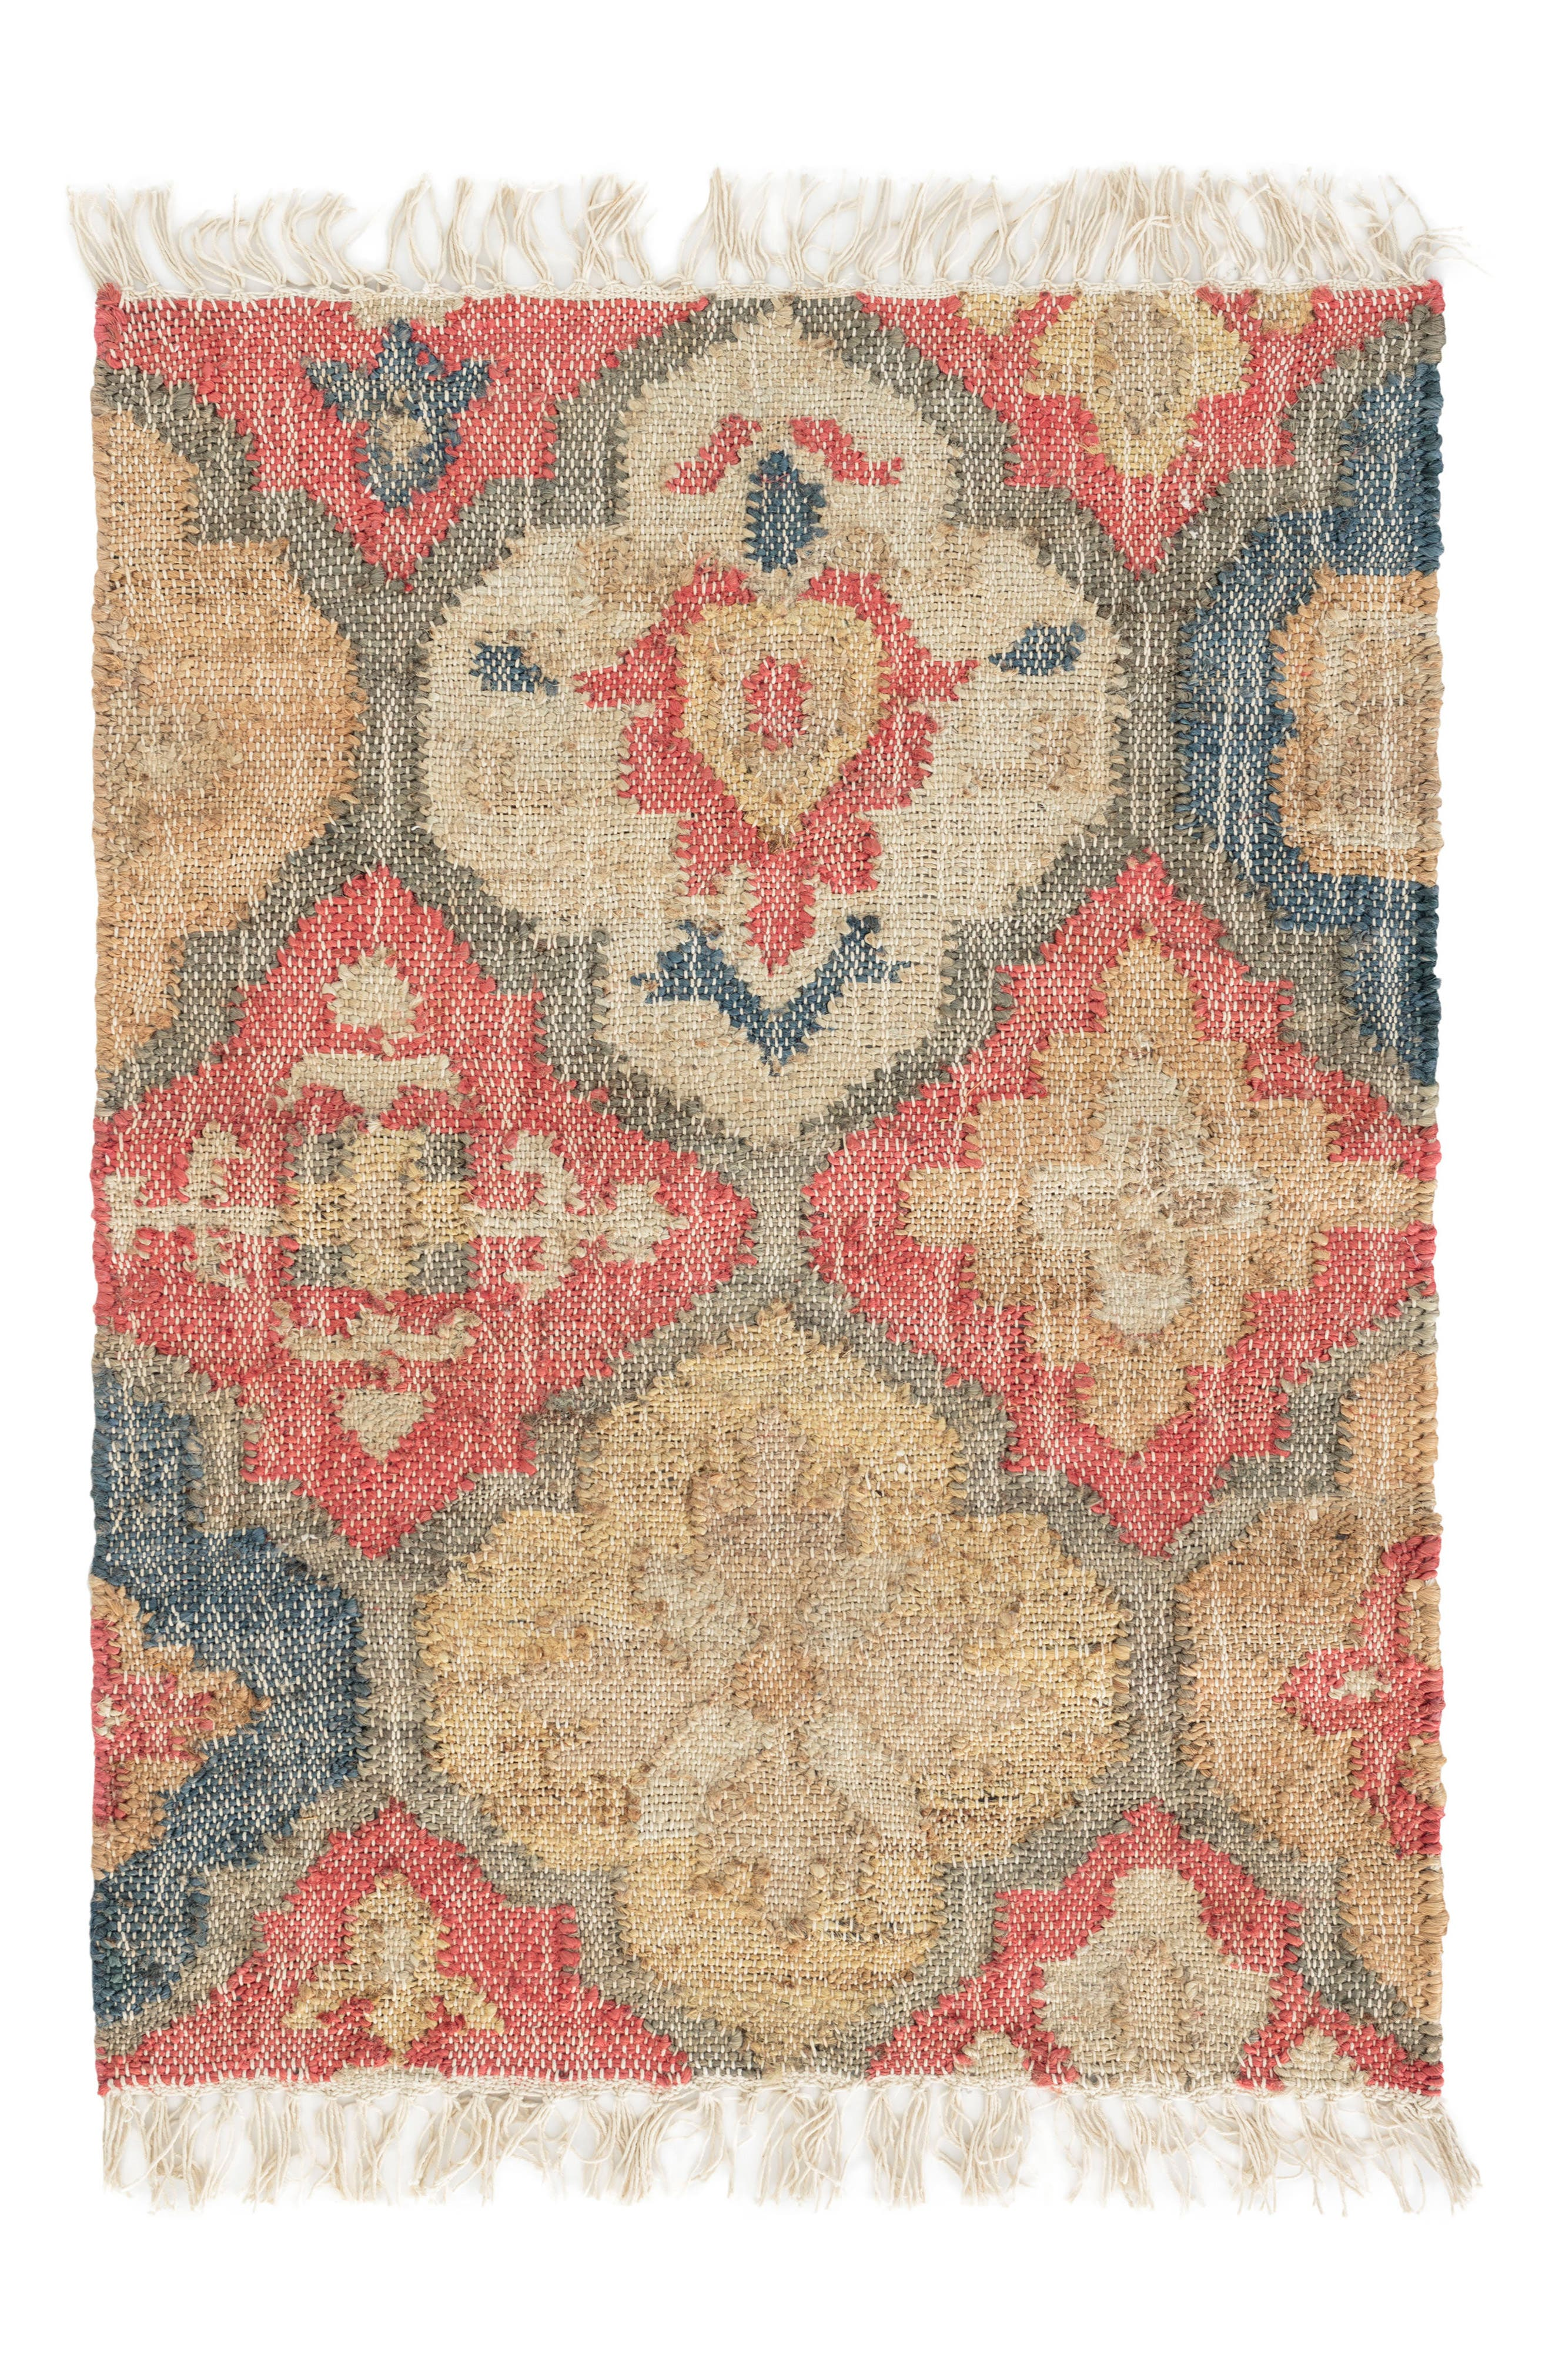 Pali Woven Rug,                         Main,                         color, RED